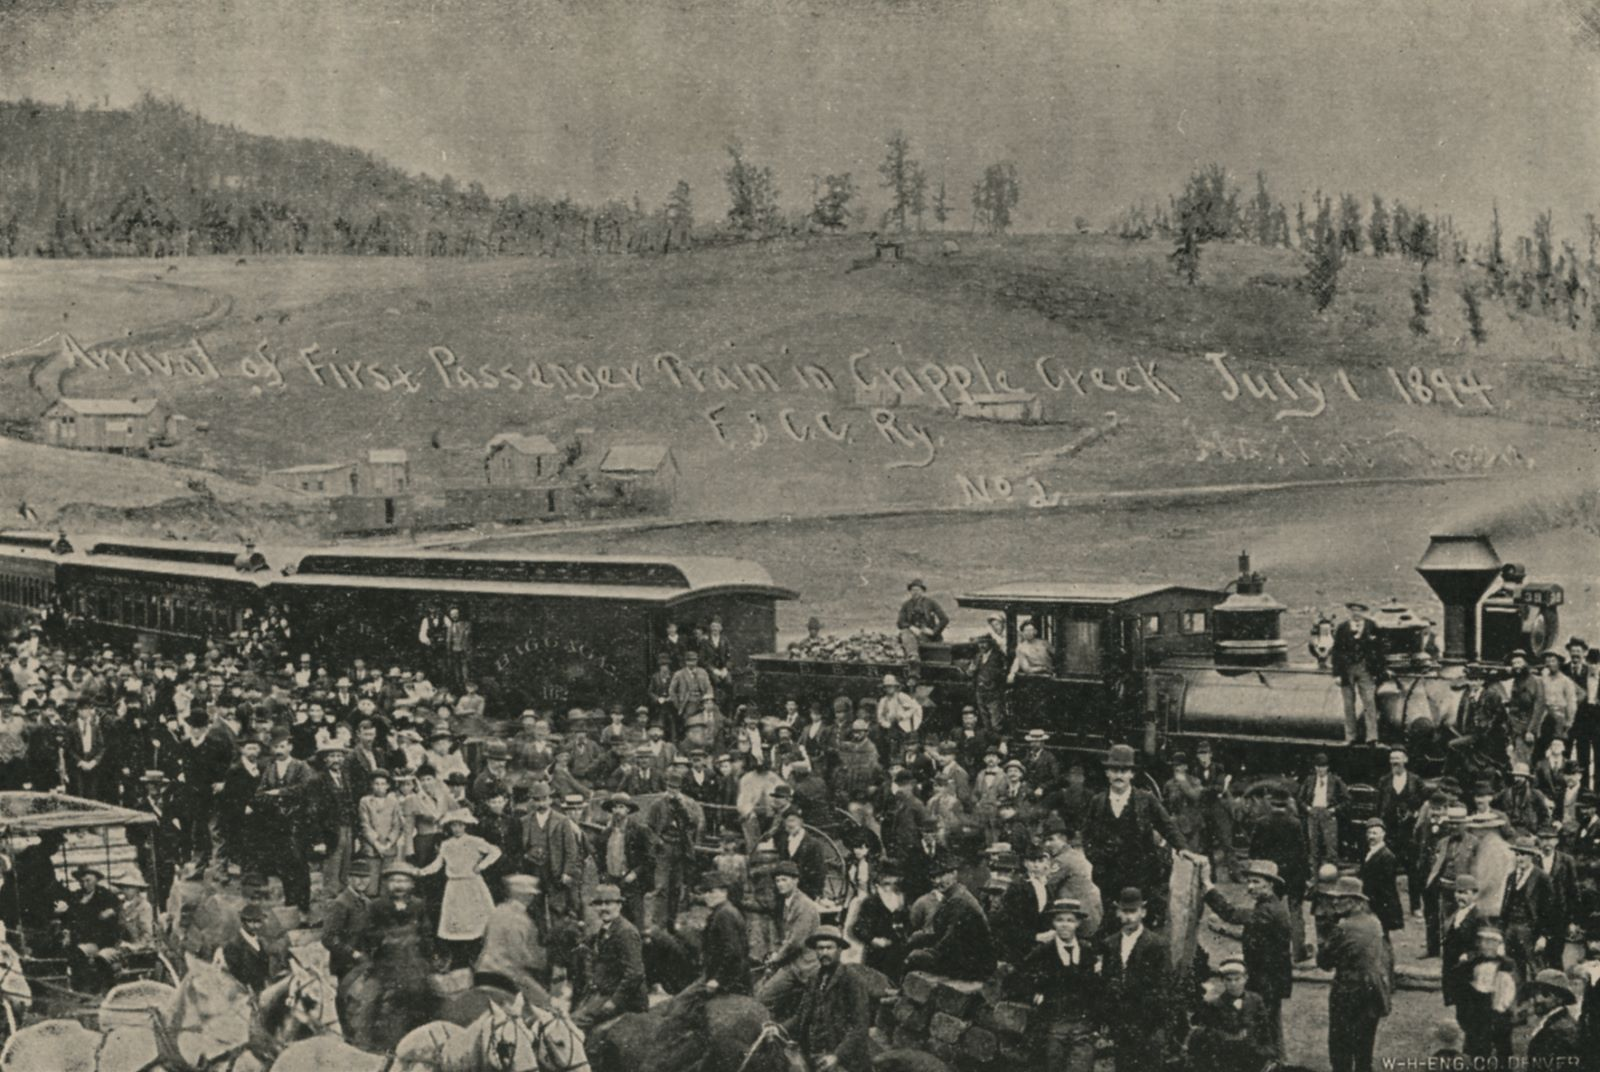 Arrival of First Passenger Train in Cripple Creek July 1, 1894 F. & C.C. Ry. | This Was the Occasion of Much Joy, as Will Be Seen From the Assemblage of People.